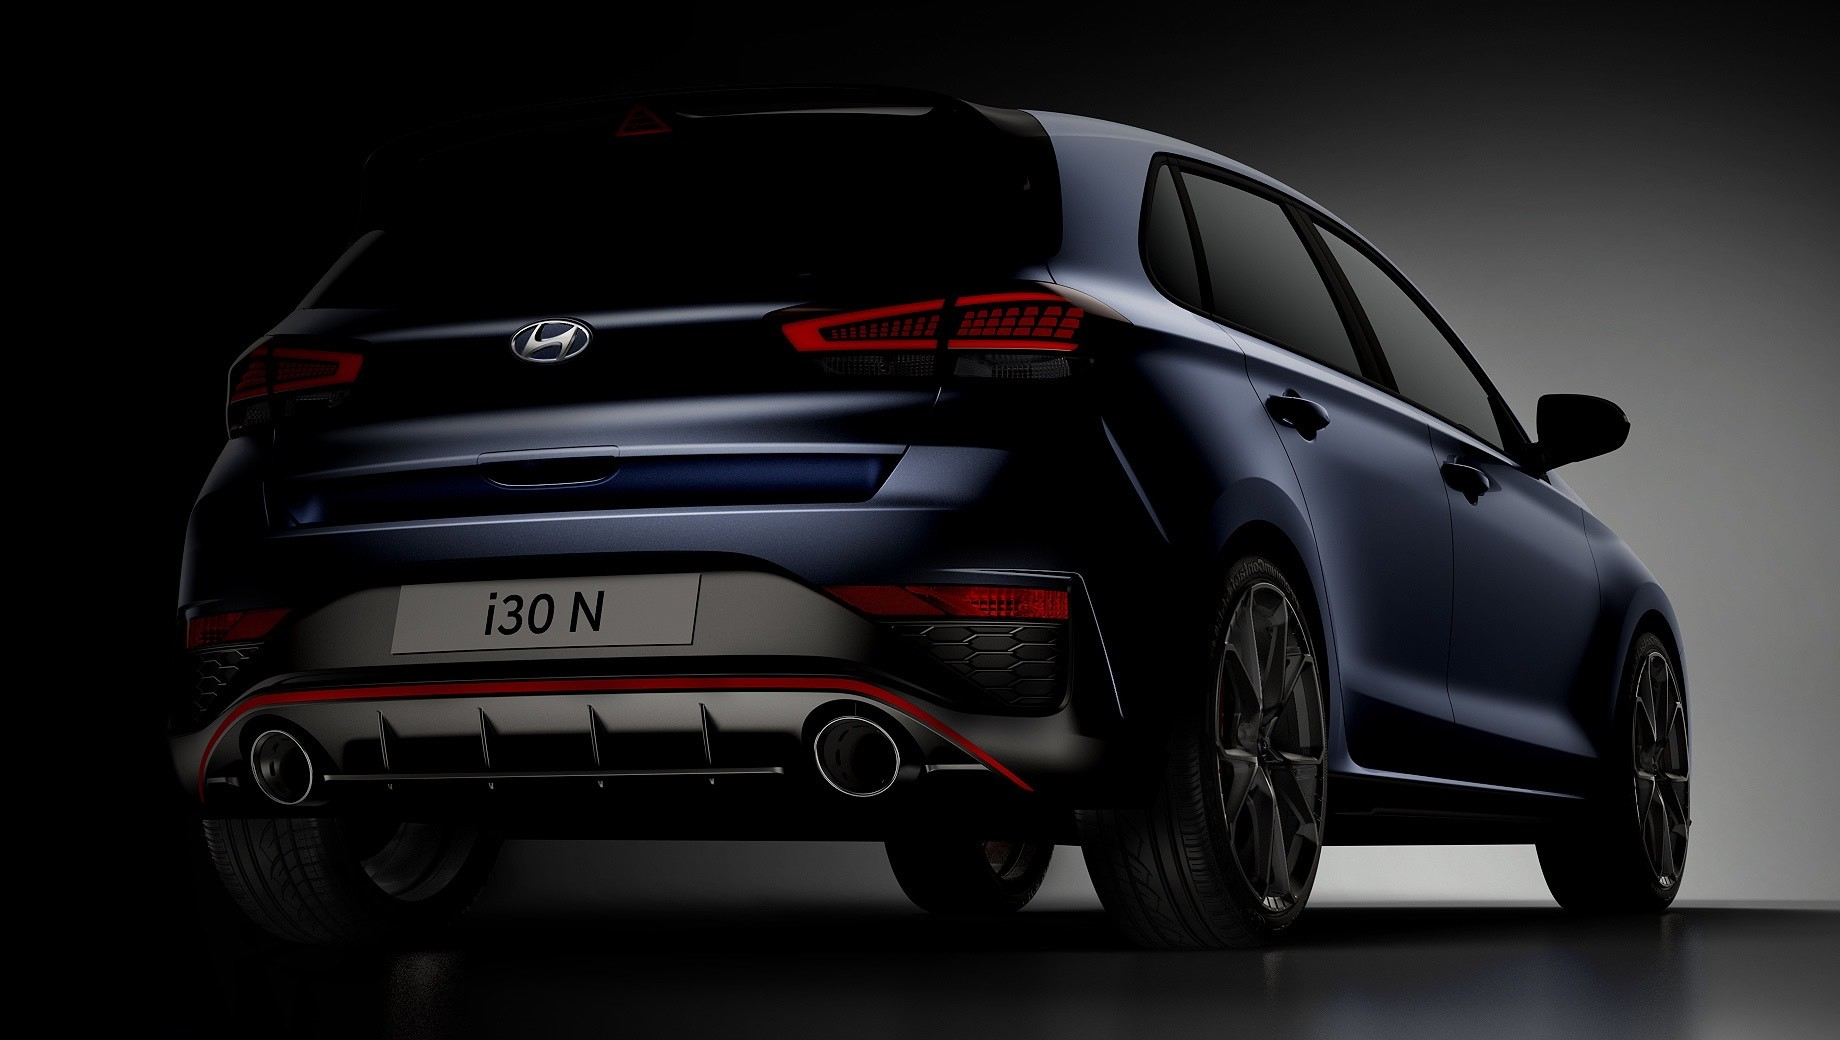 The regular Hyundai i30 received its 2021MY treatment a few months ago, while the i30 N hot hatch is still preparing for one. The latest pics from the manufacturer reveal new bumpers, grille and headlights, as well as larger exhaust tips and lighter 19-inch wheels.